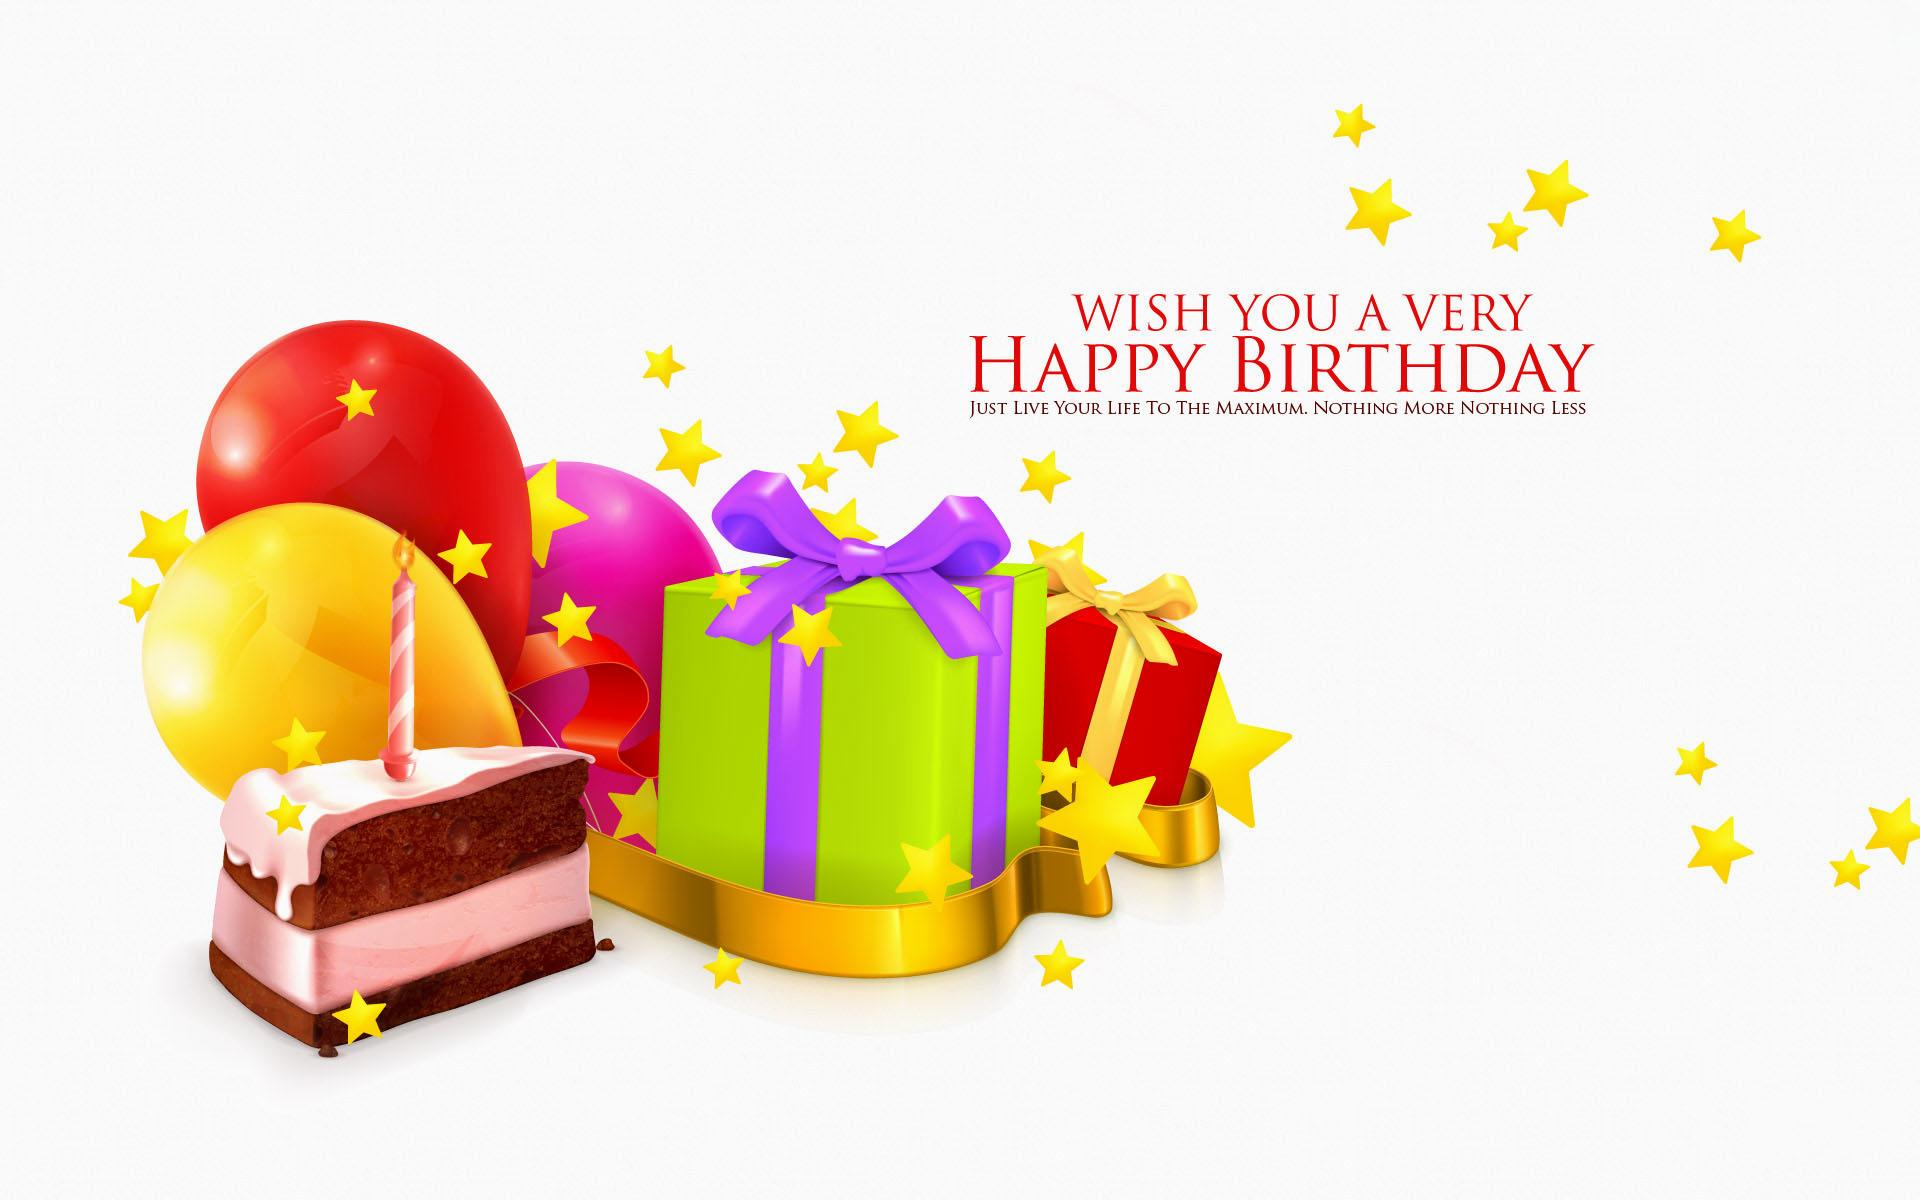 birthday background wallpapers hd ; Happy-Birthday-Wish-You-A-Very-b-Happy-Birthday-b-Fre-wallpaper-wp6406055